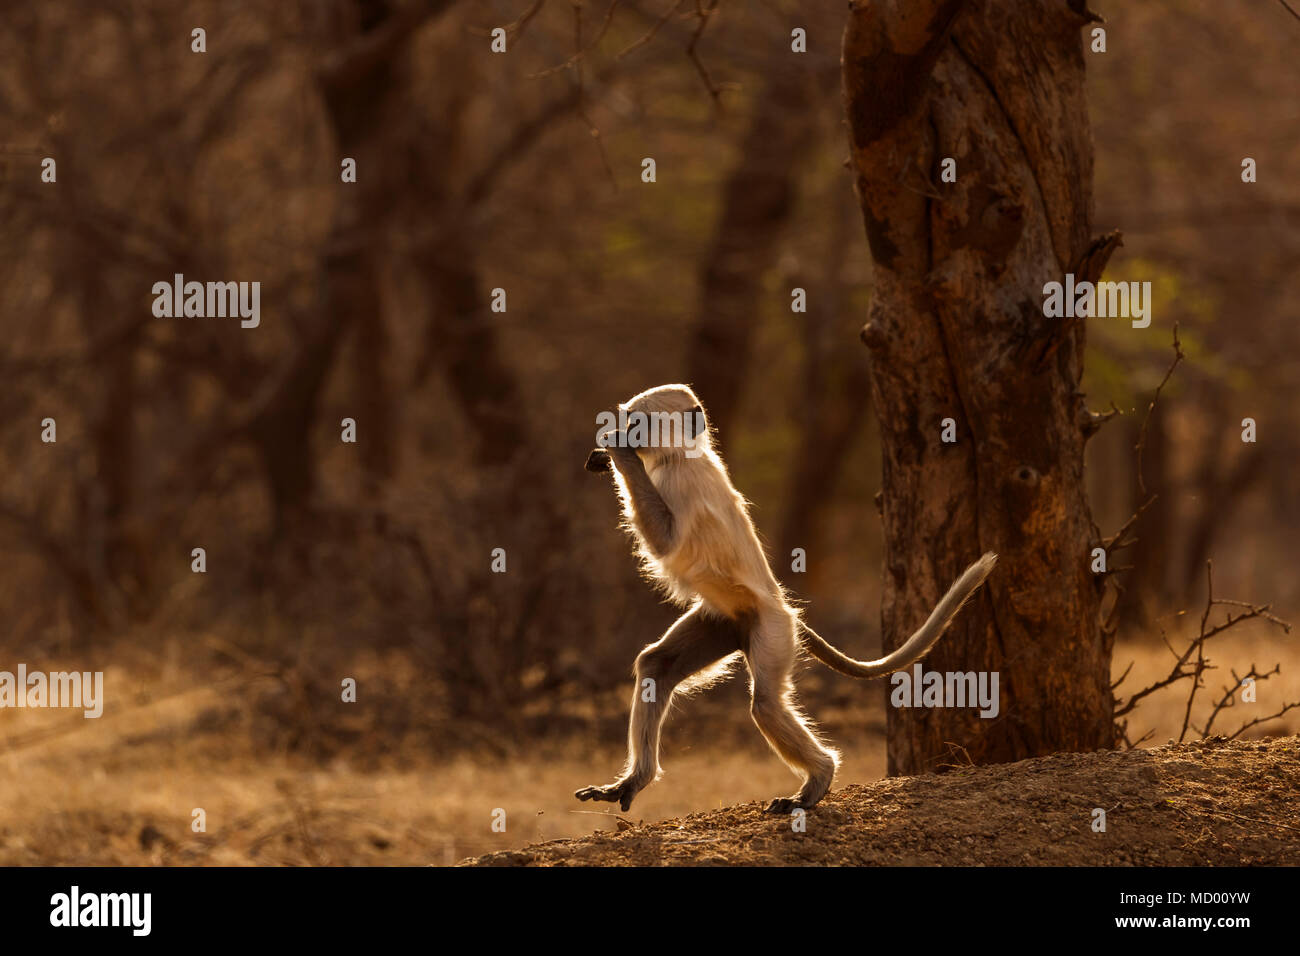 Backlit active juvenile grey langur (Semnopithecus entellus), an old world monkey, Ranthambore National Park, Rajasthan, north India, walking upright - Stock Image